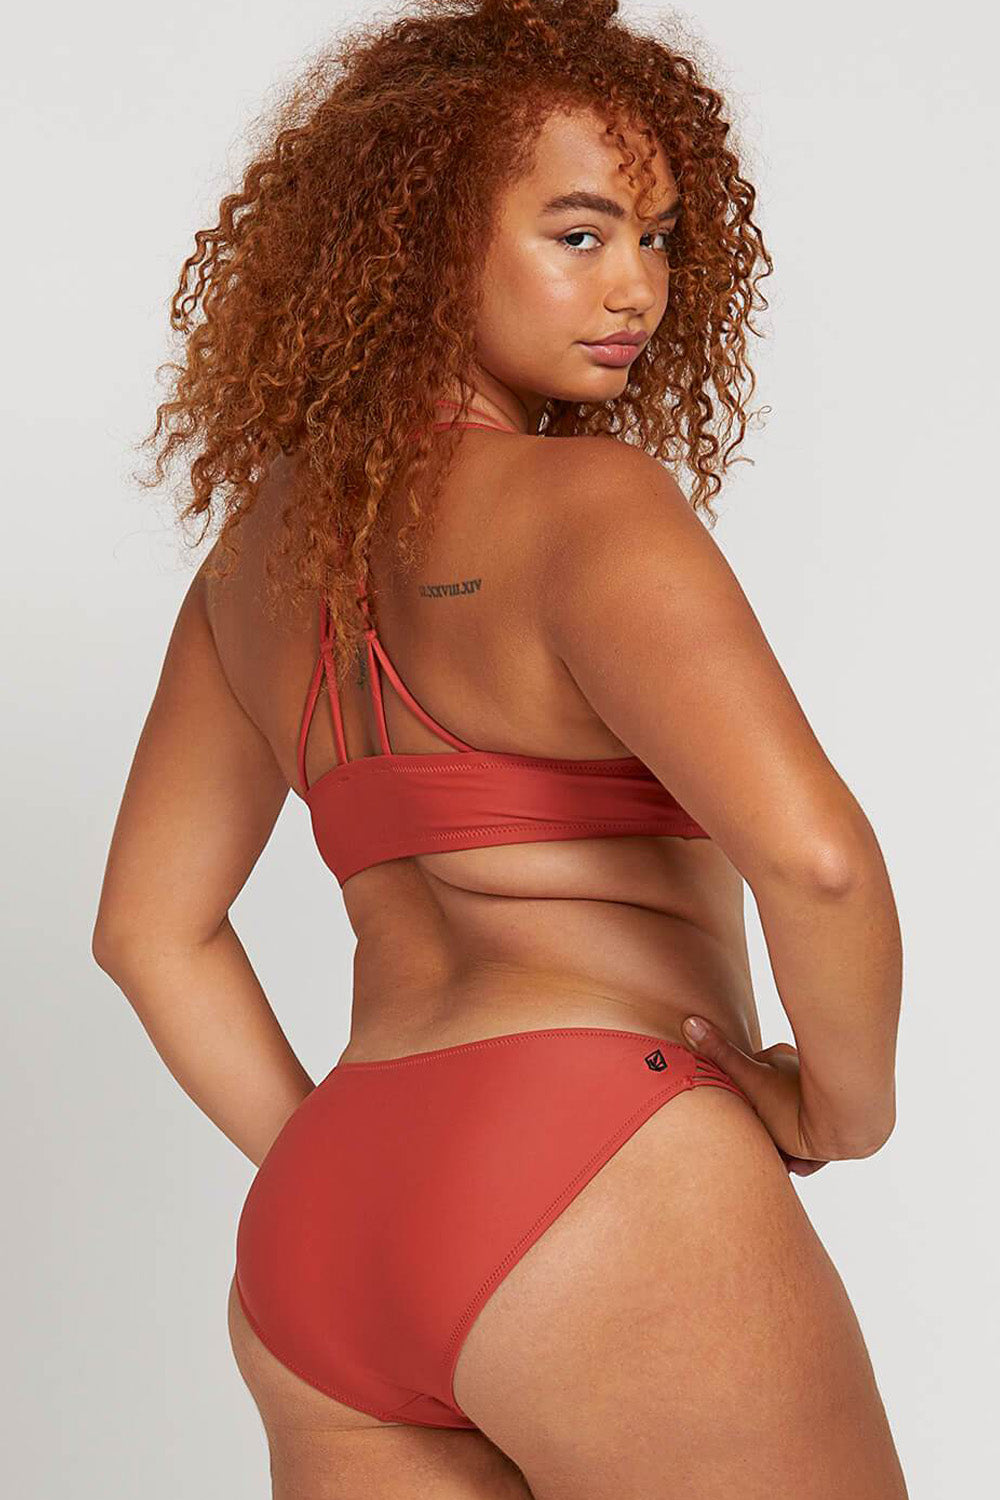 927fb5a6a0 Volcom Swimwear | Simply Solid Cheeky Bottom in Burnt Red | Cacique ...